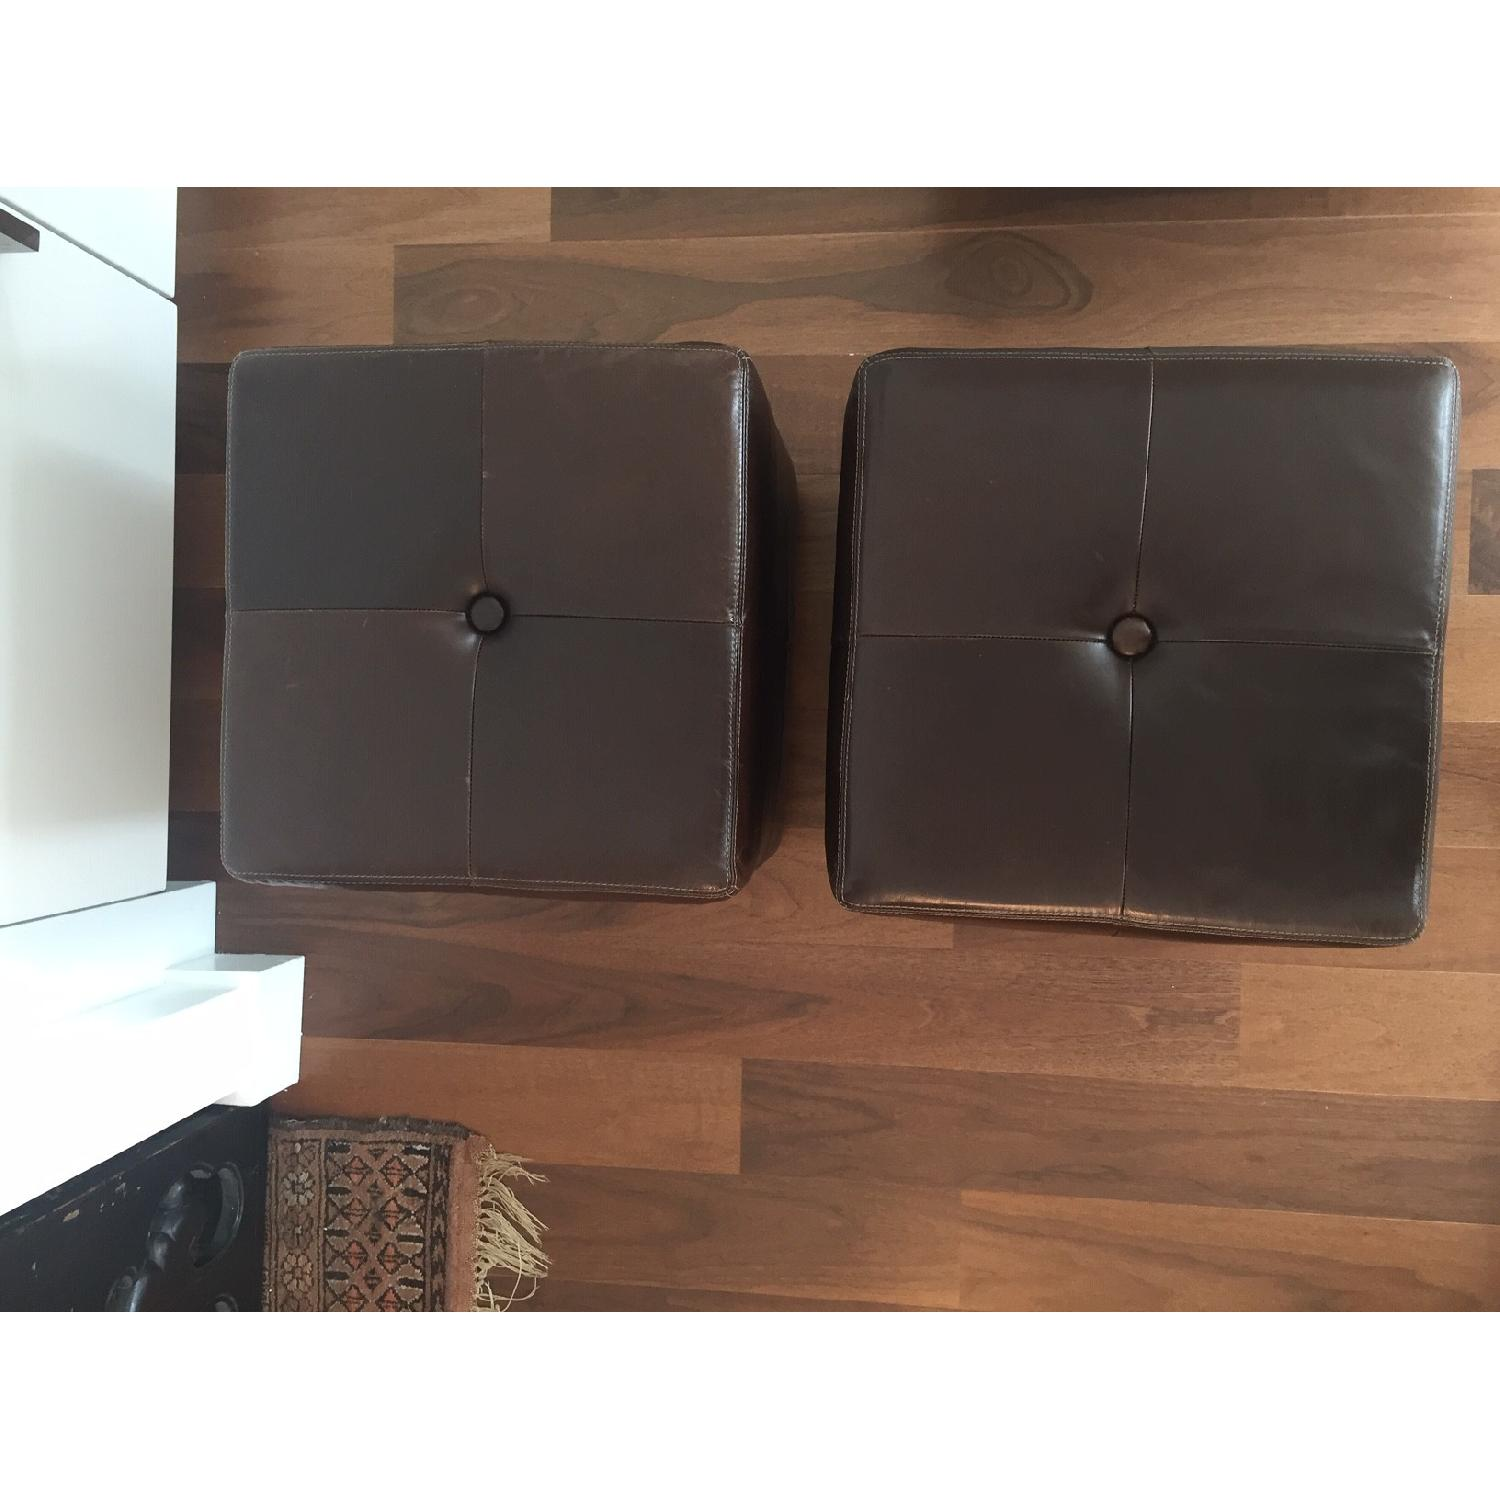 Pottery Barn Leather Square Ottoman - image-2